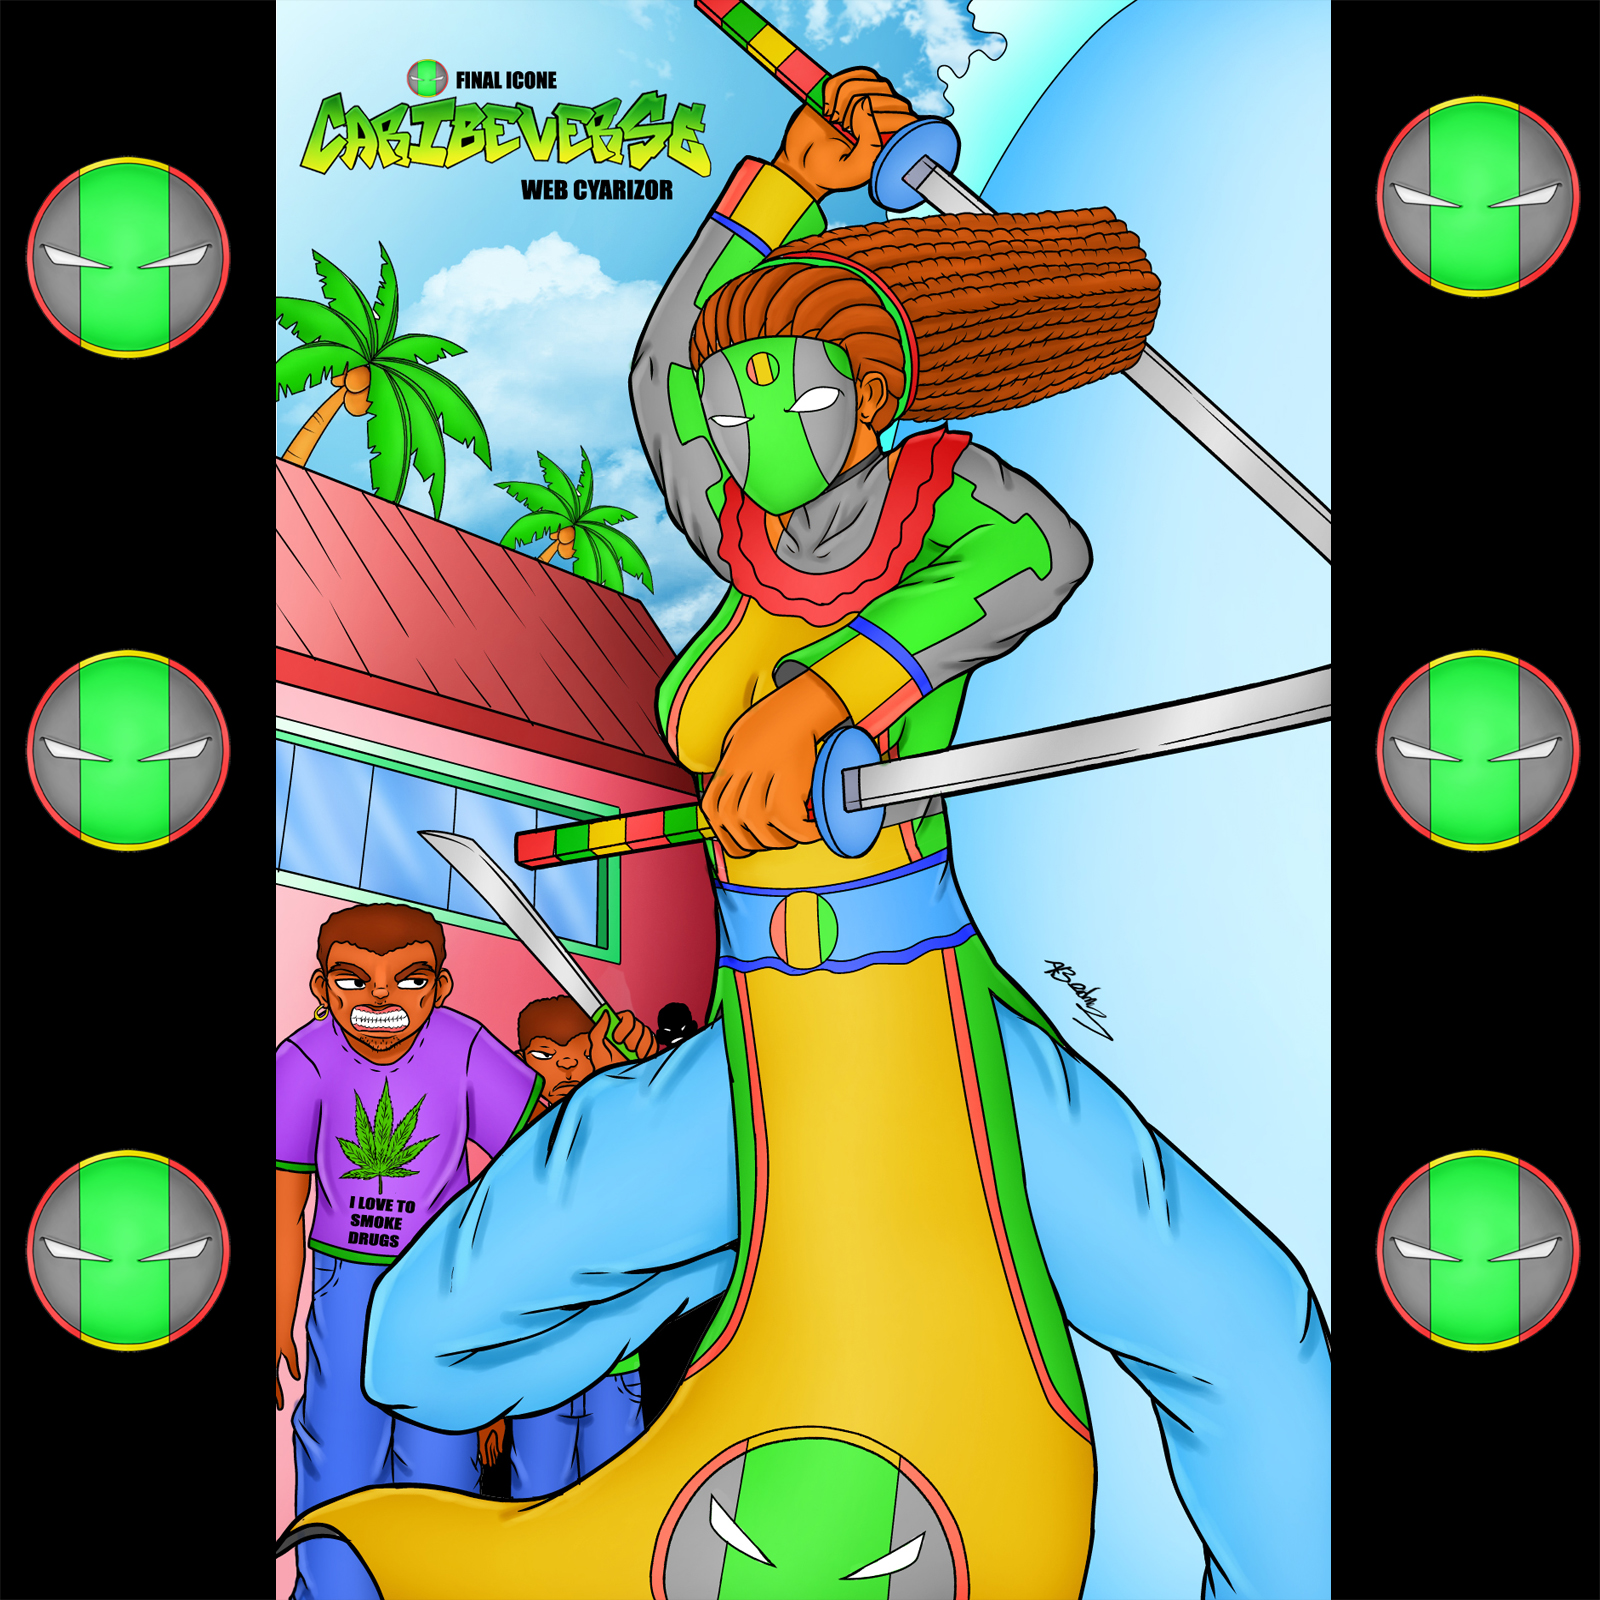 Caribeverse two sword action